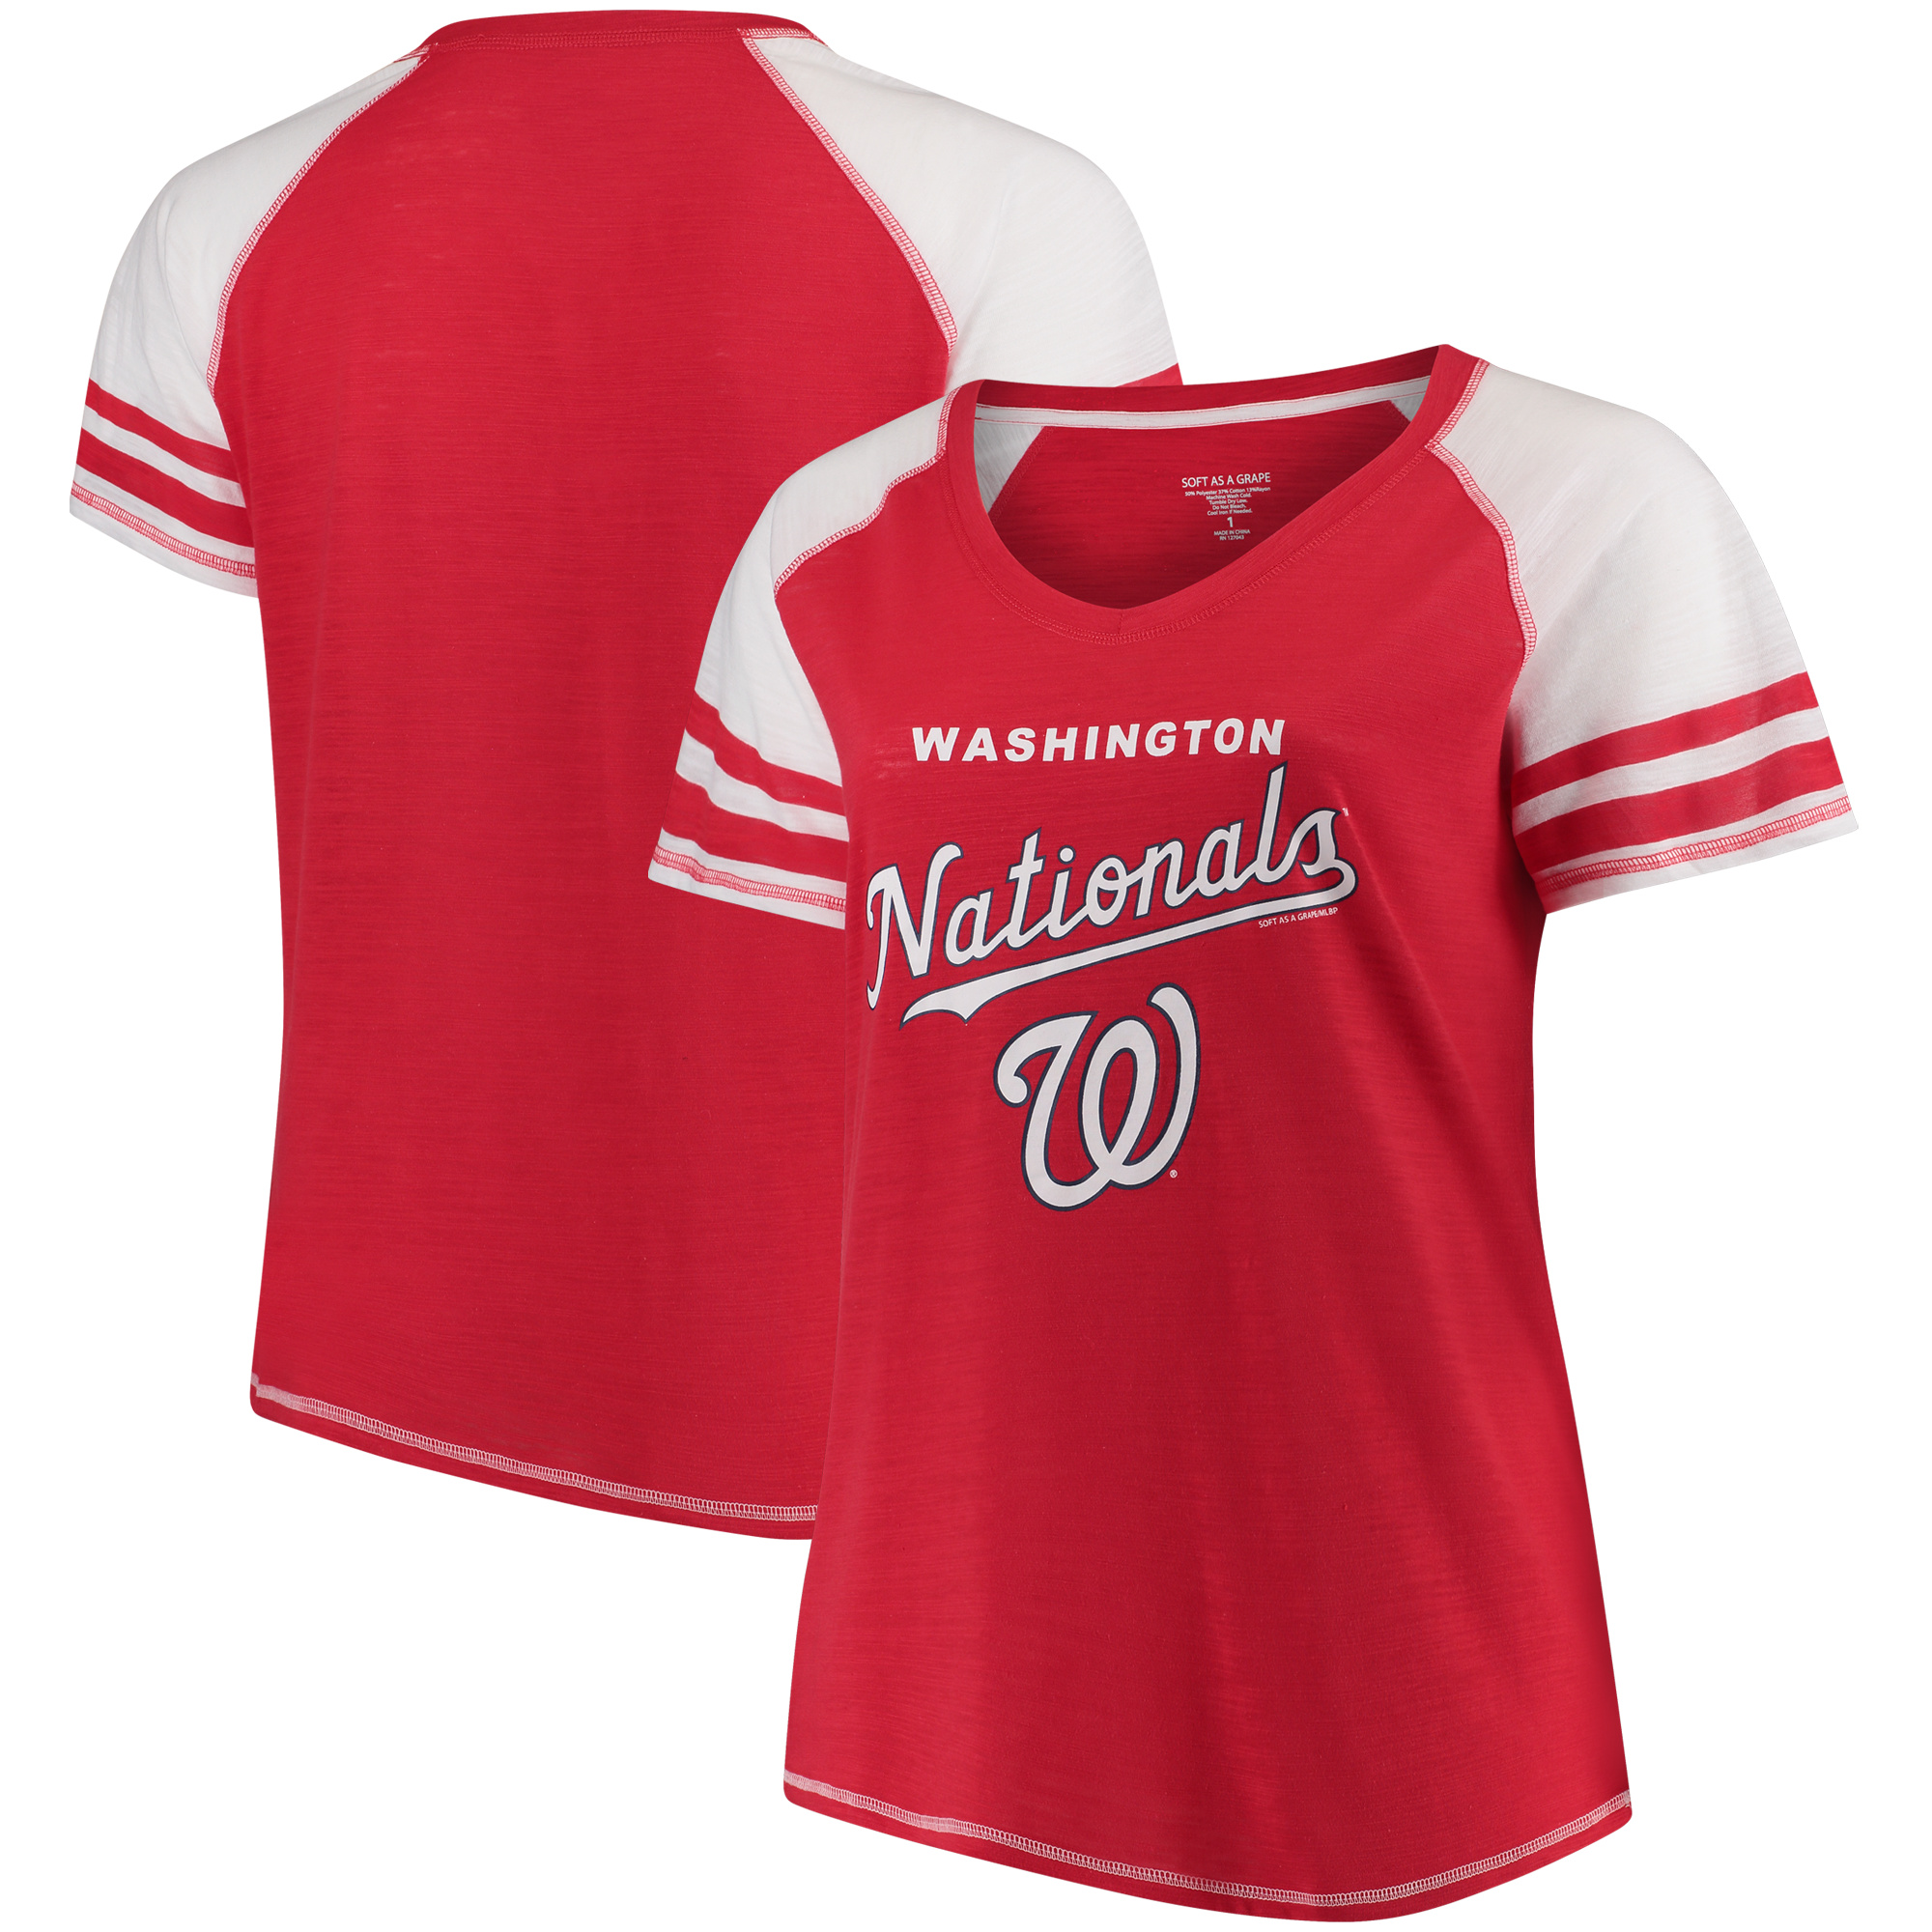 Washington Nationals Soft as a Grape Women's Plus Sizes Three Out Color Blocked Raglan Sleeve T-Shirt - Red